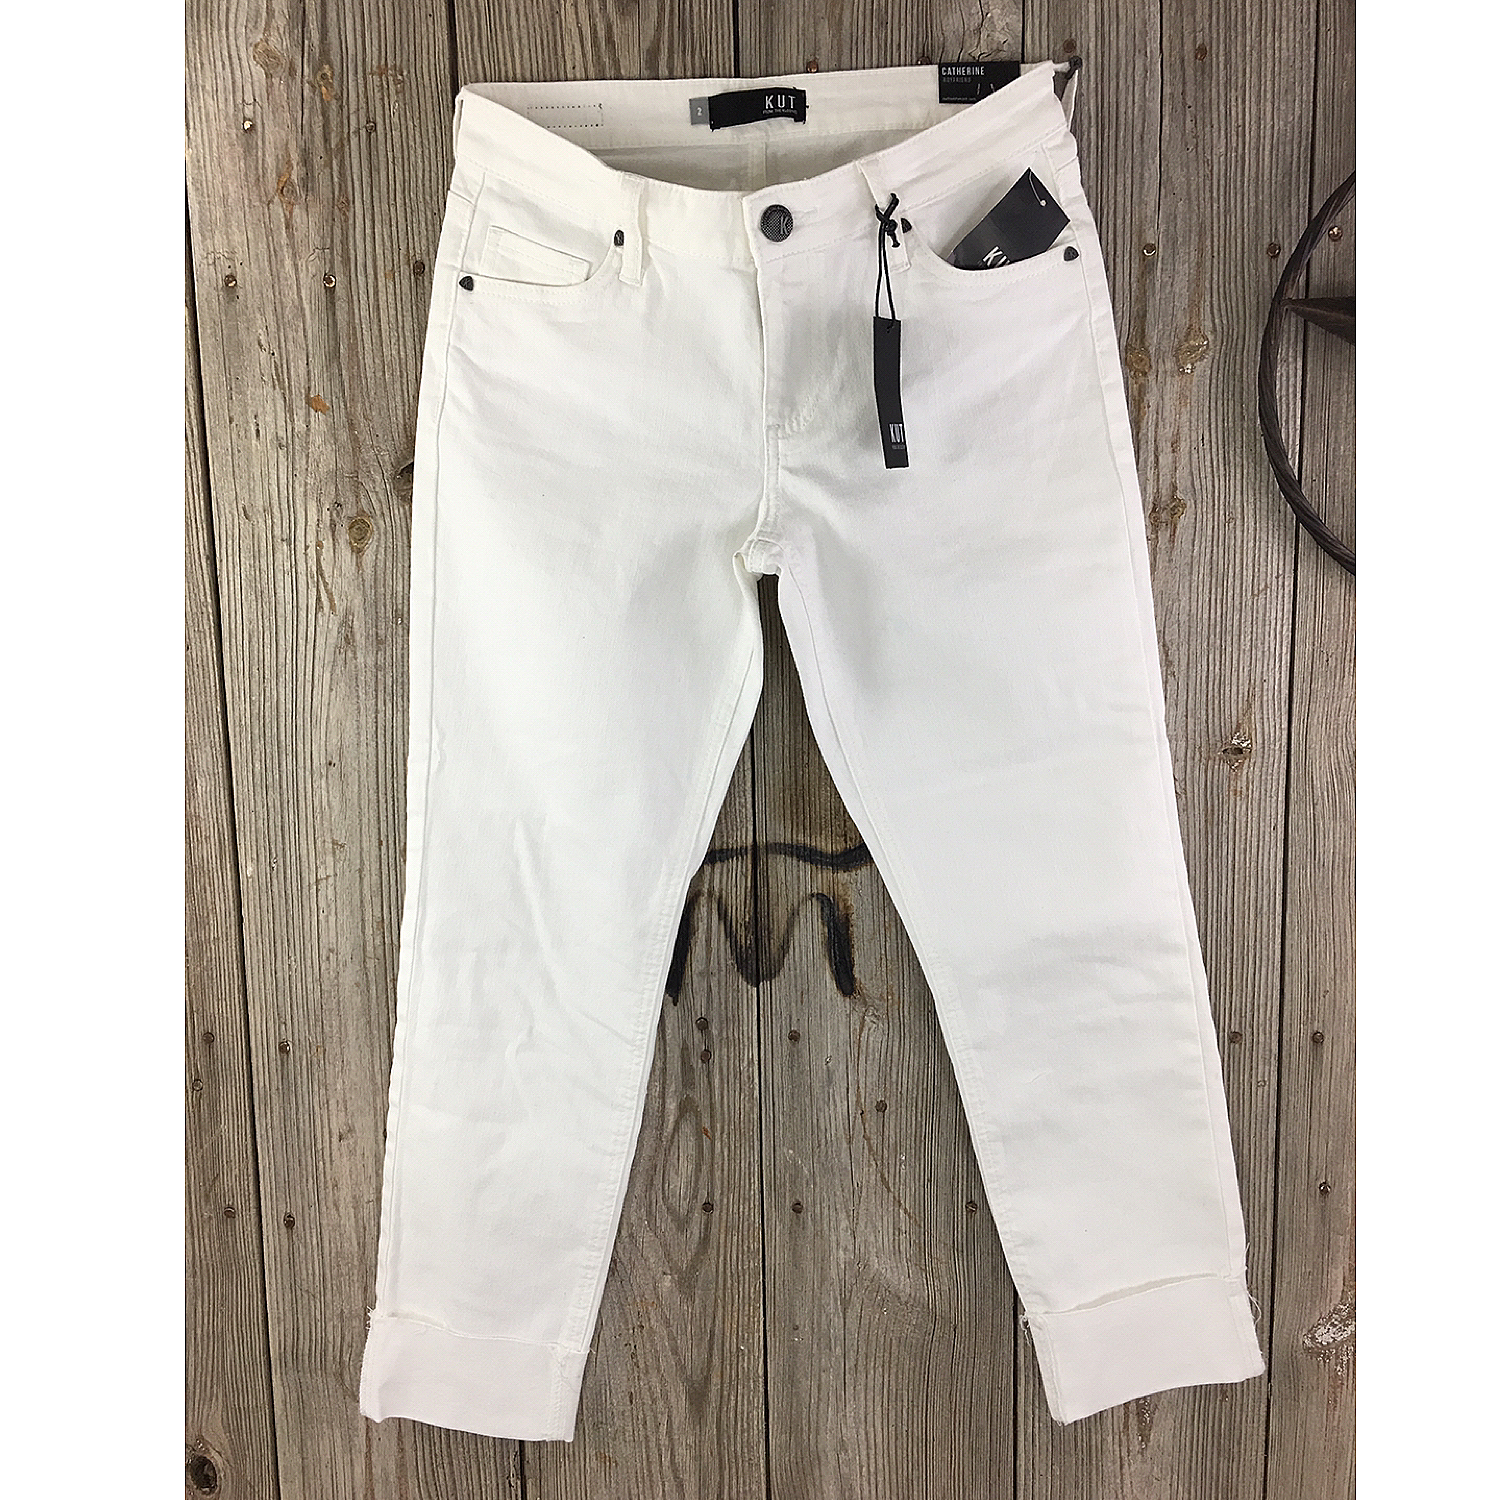 Catherine Boyfriend White Crop Jean